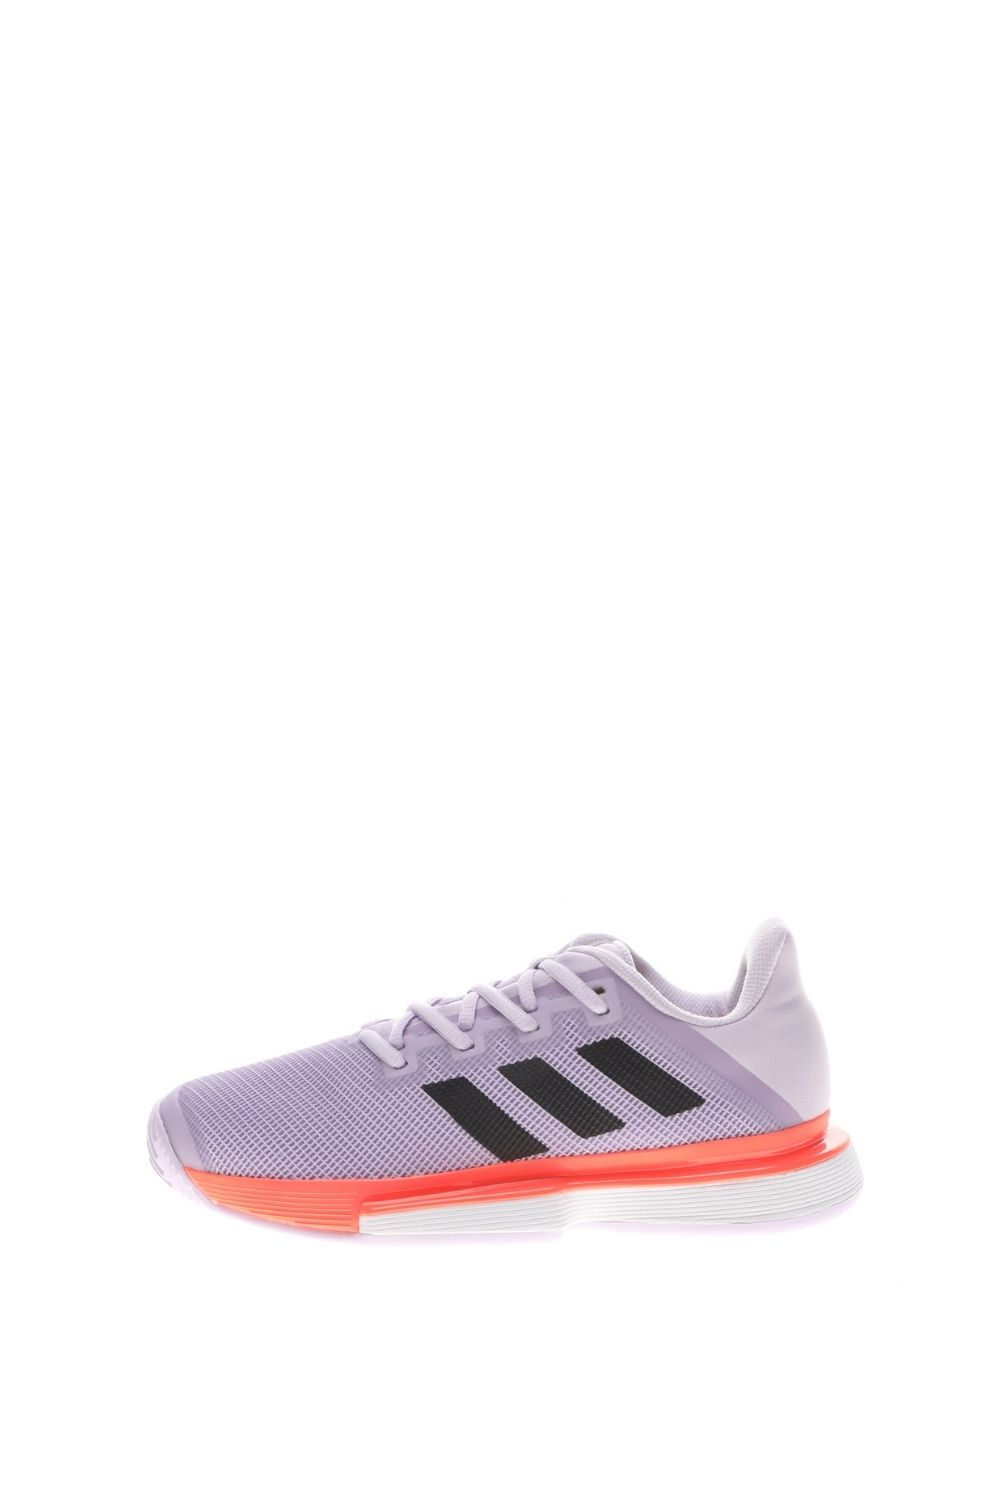 adidas Performance – Γυναικεία παπούτσια tennis adidas Performance SoleMatch Bounce μωβ